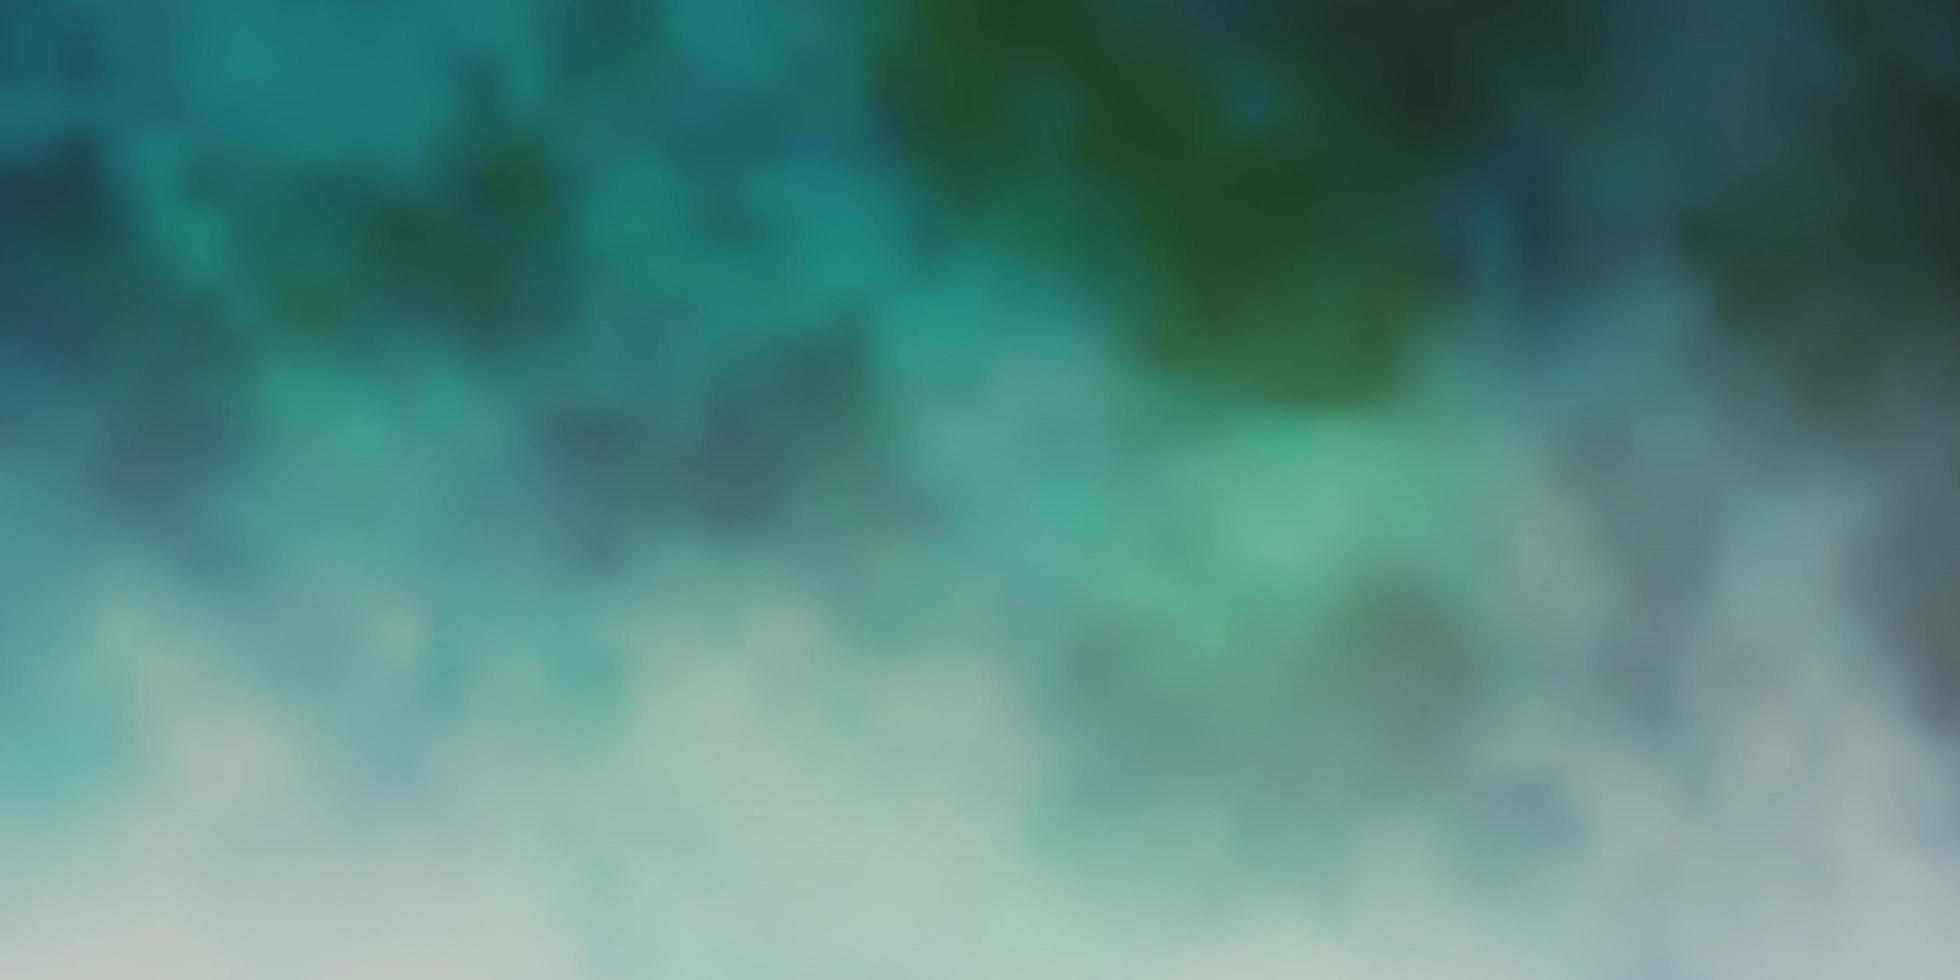 Dark Green vector background with clouds.